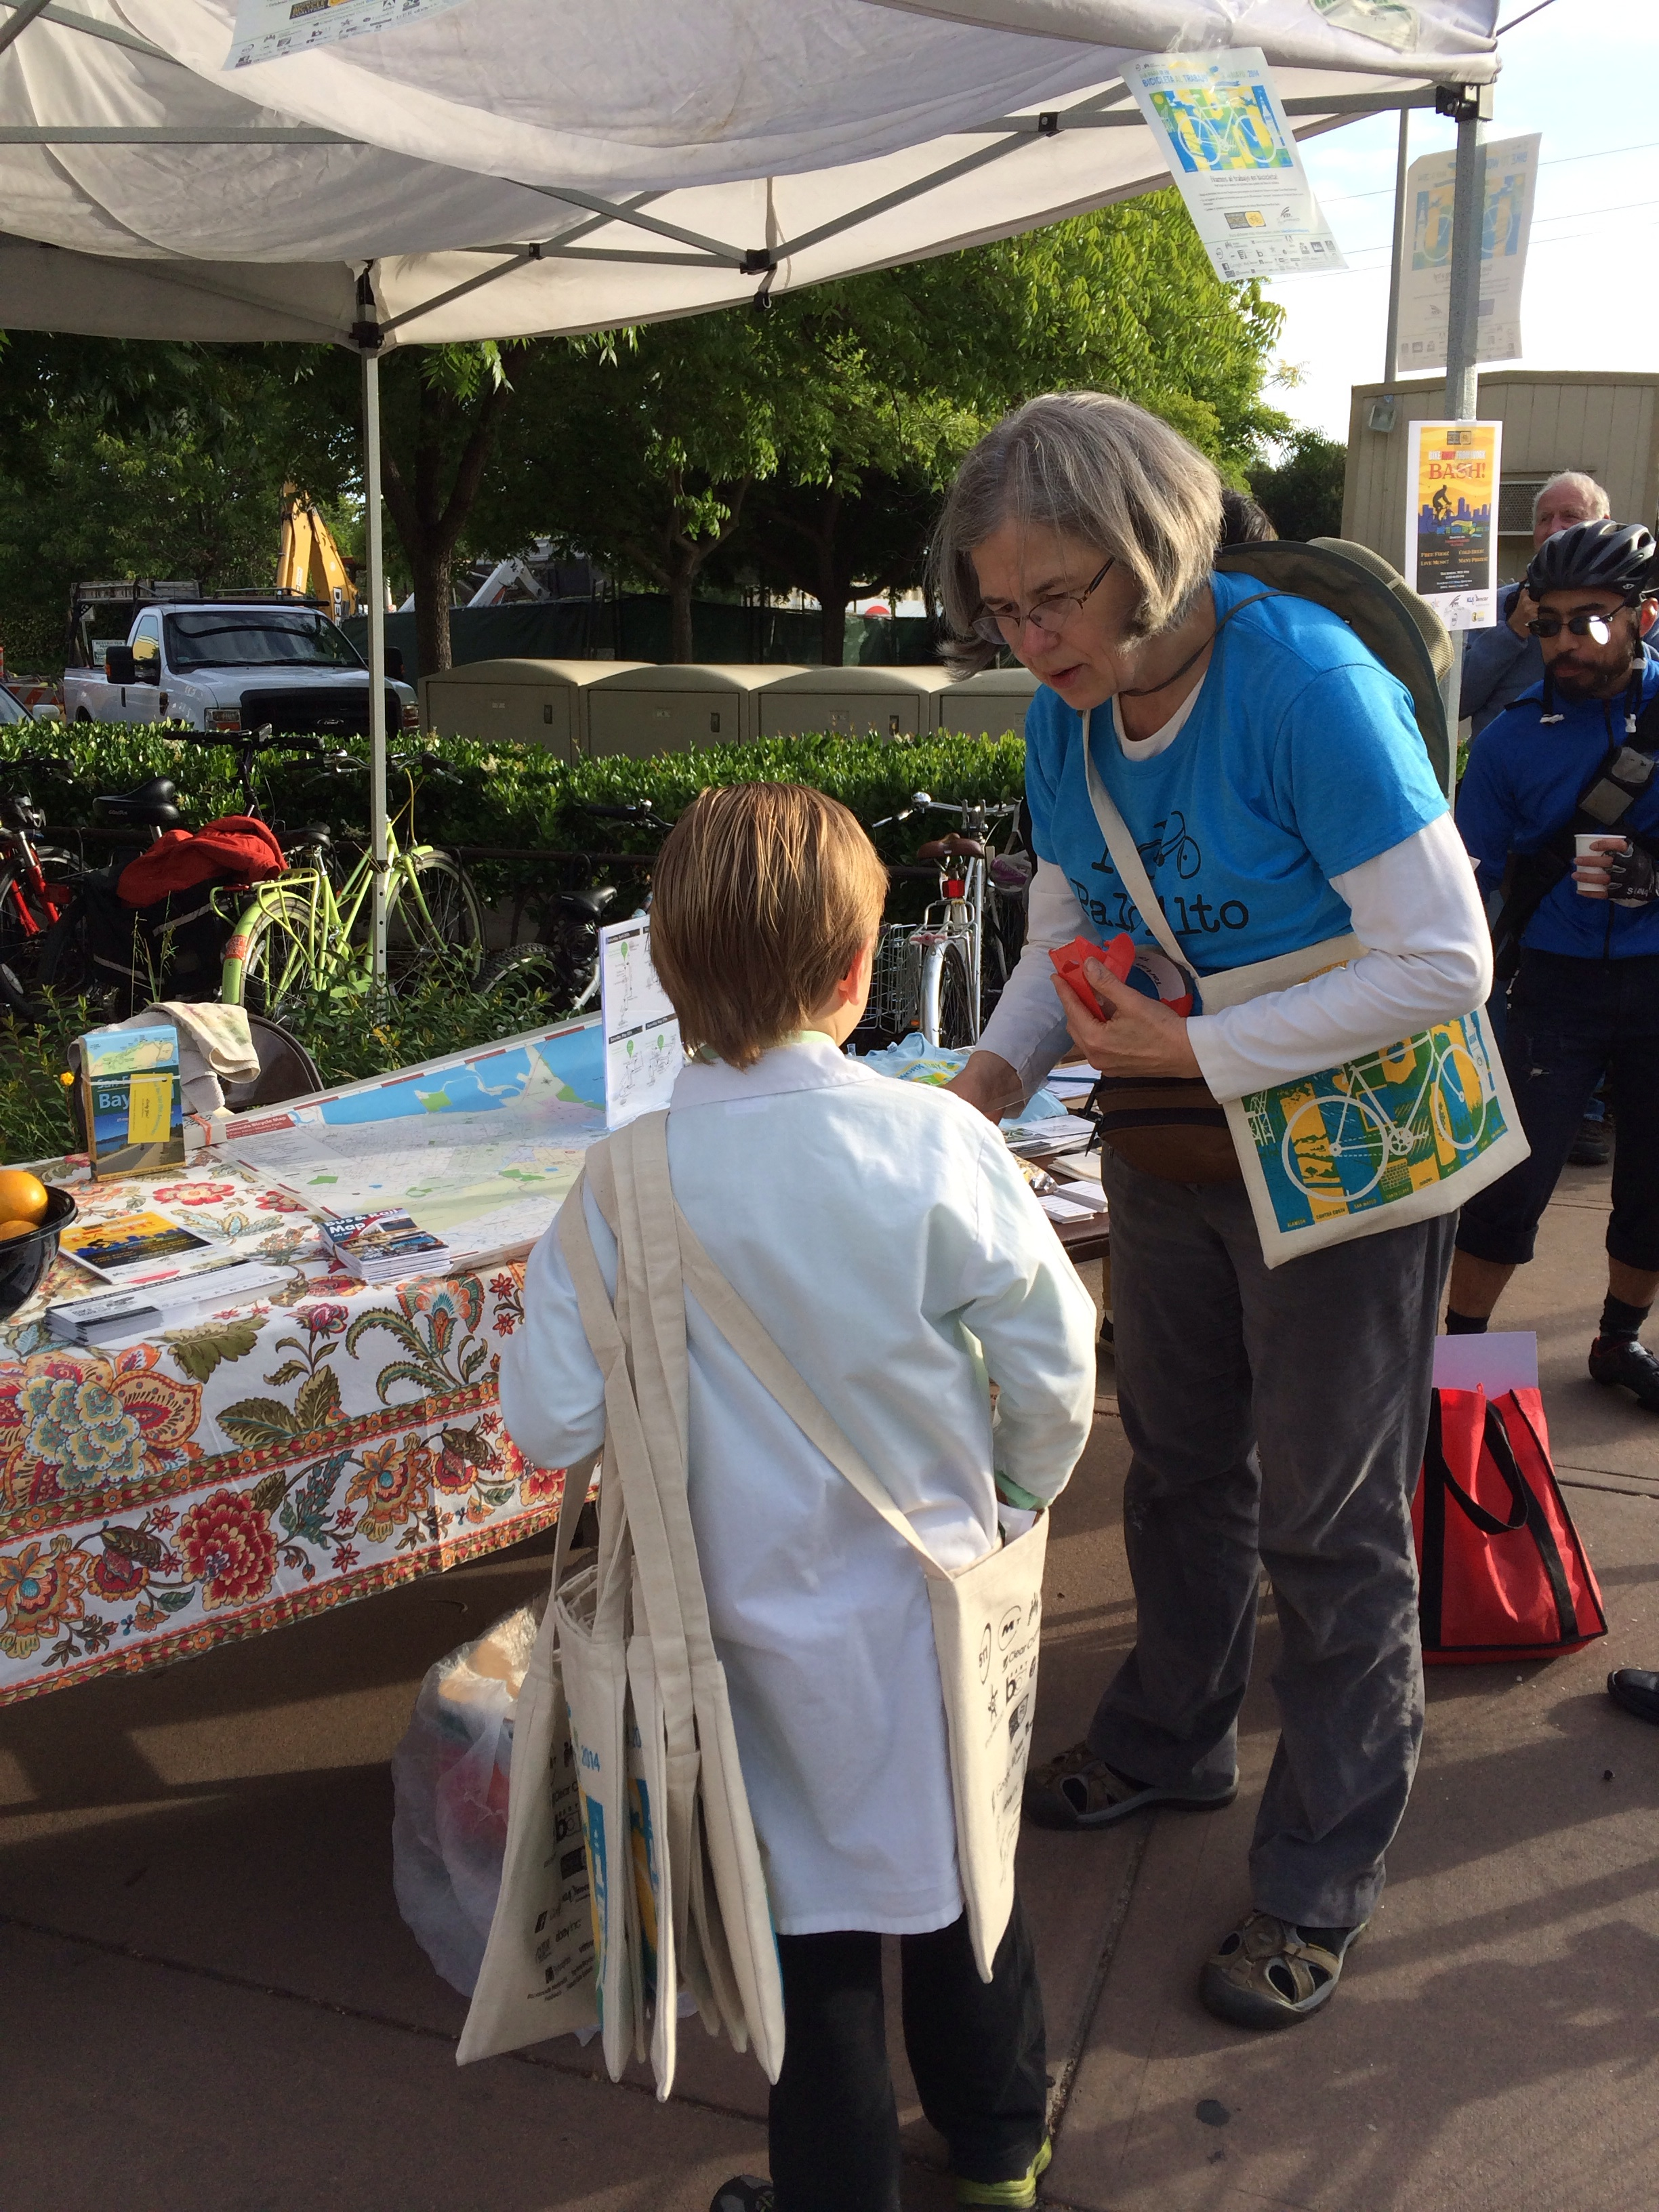 Kathy Durham, Palo Alto's Safe Routes to School/Commute coordinator, gives Elliot goodie bags to hand out.